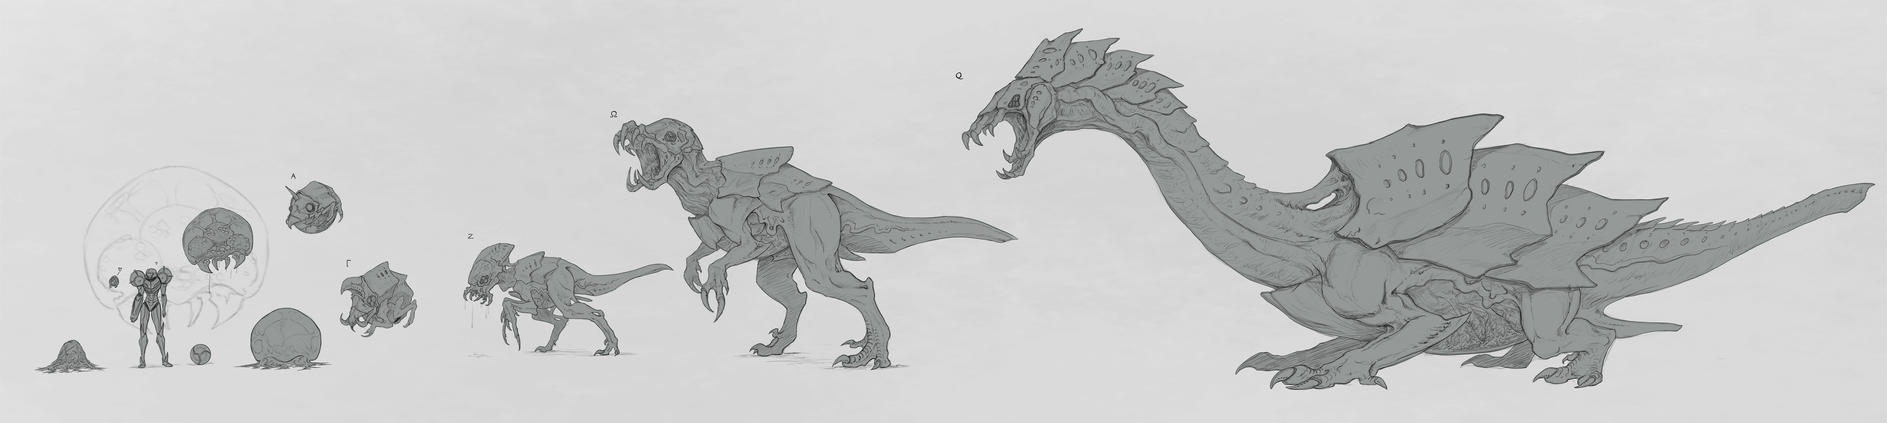 Metroid Life Cycle WIP by rob-powell